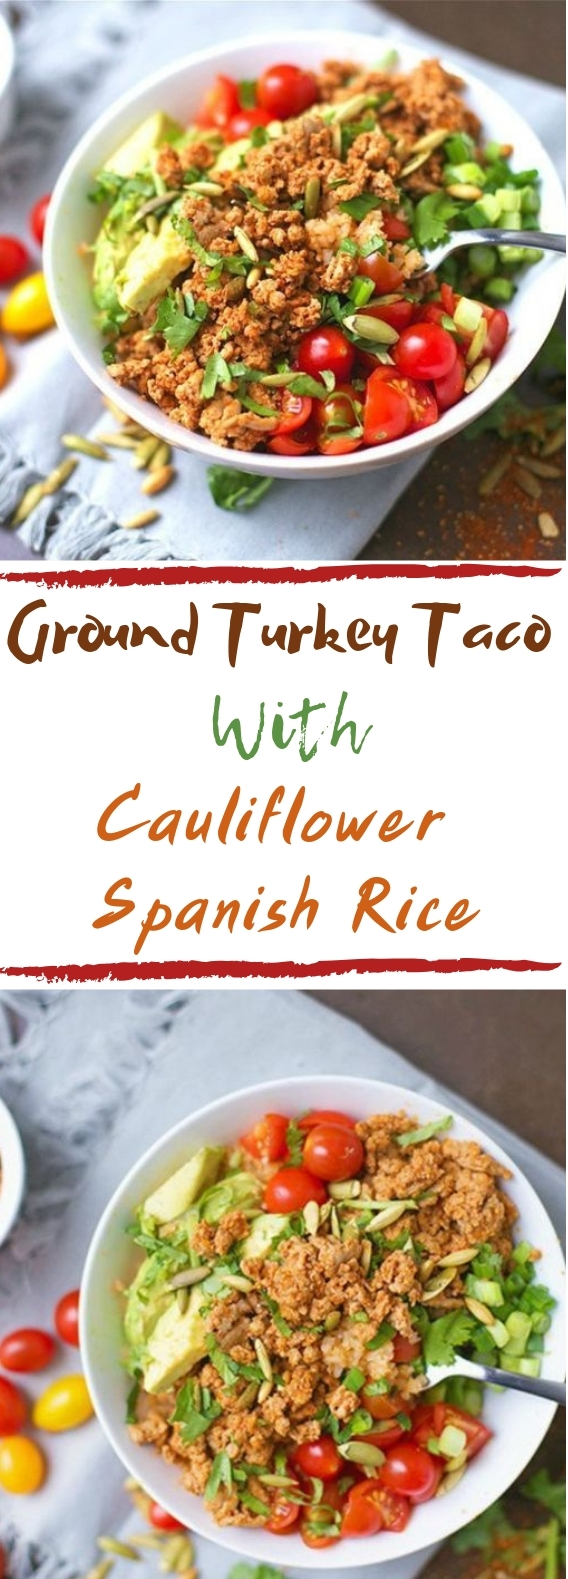 Ground Turkey Taco Bowls With Cauliflower Spanish Rice #healthy #lowcarb